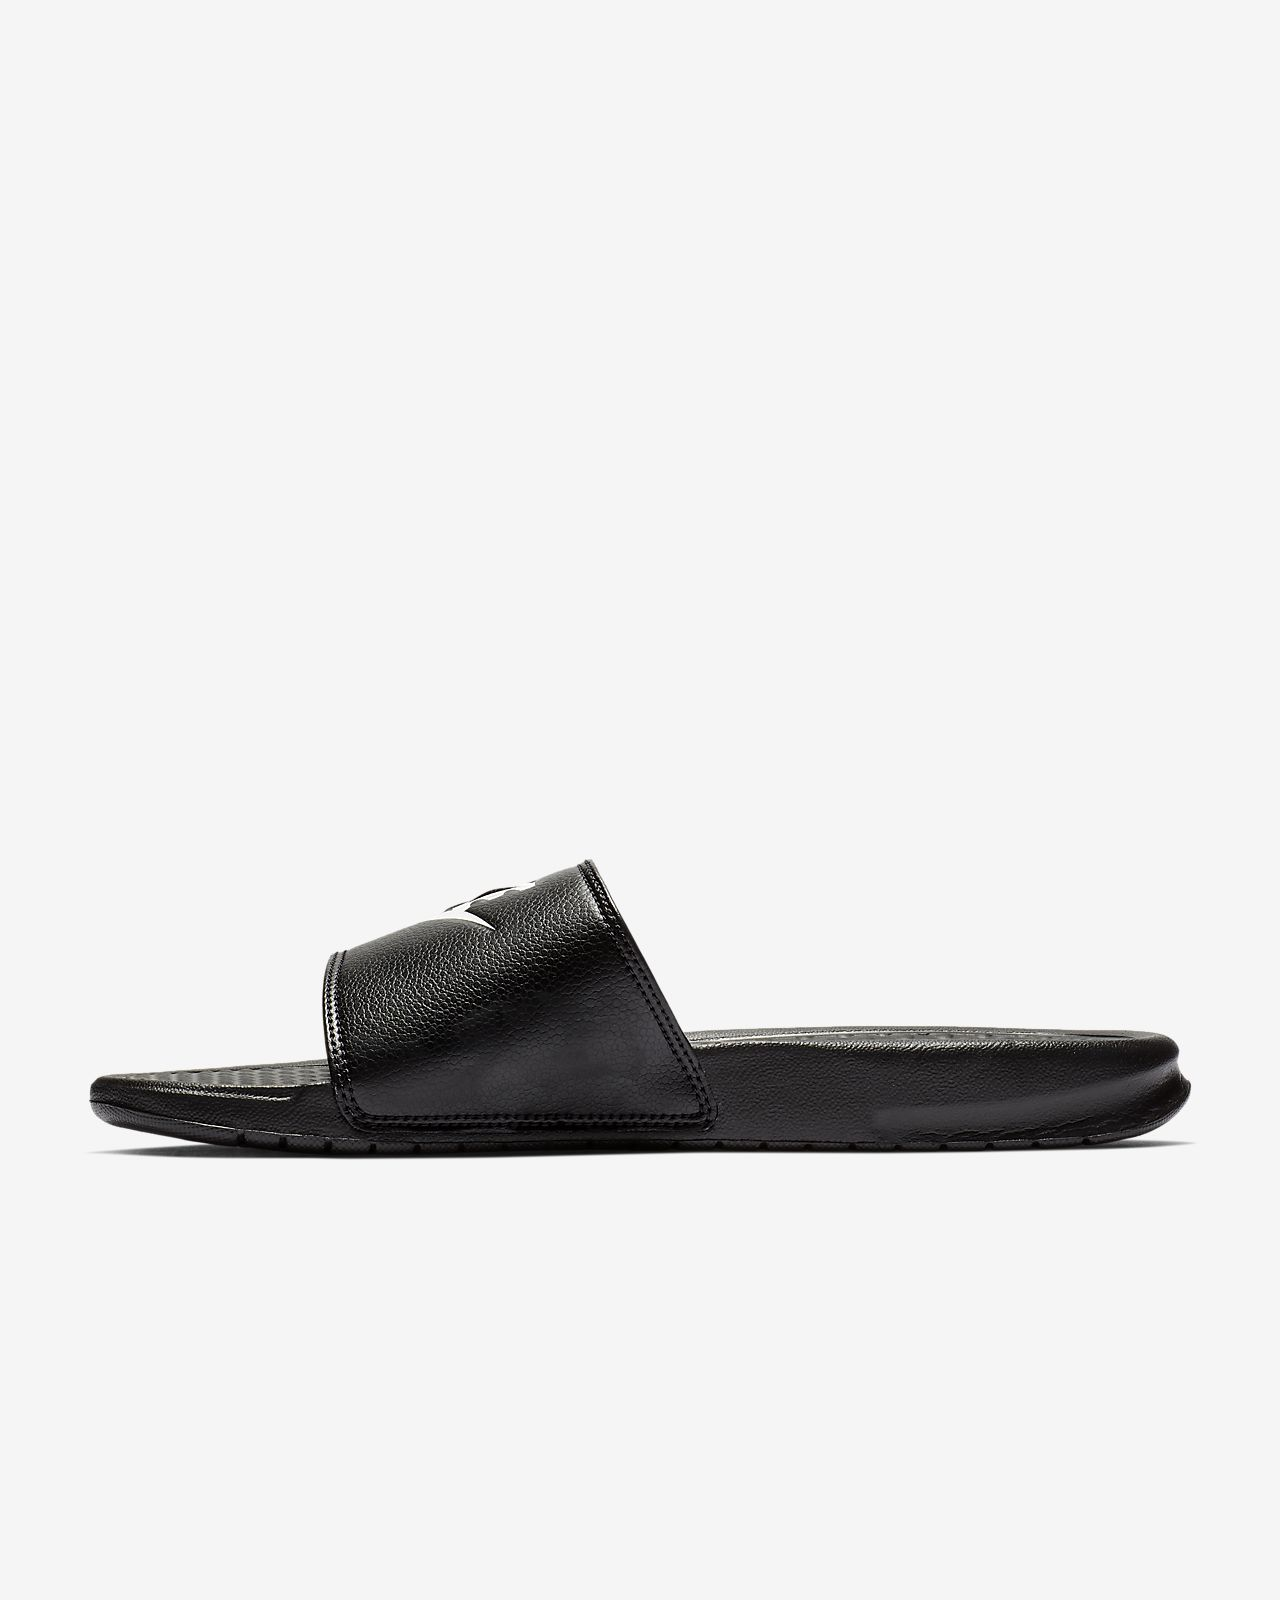 timeless design d3f7b a036f Low Resolution Nike Benassi Slide Nike Benassi Slide